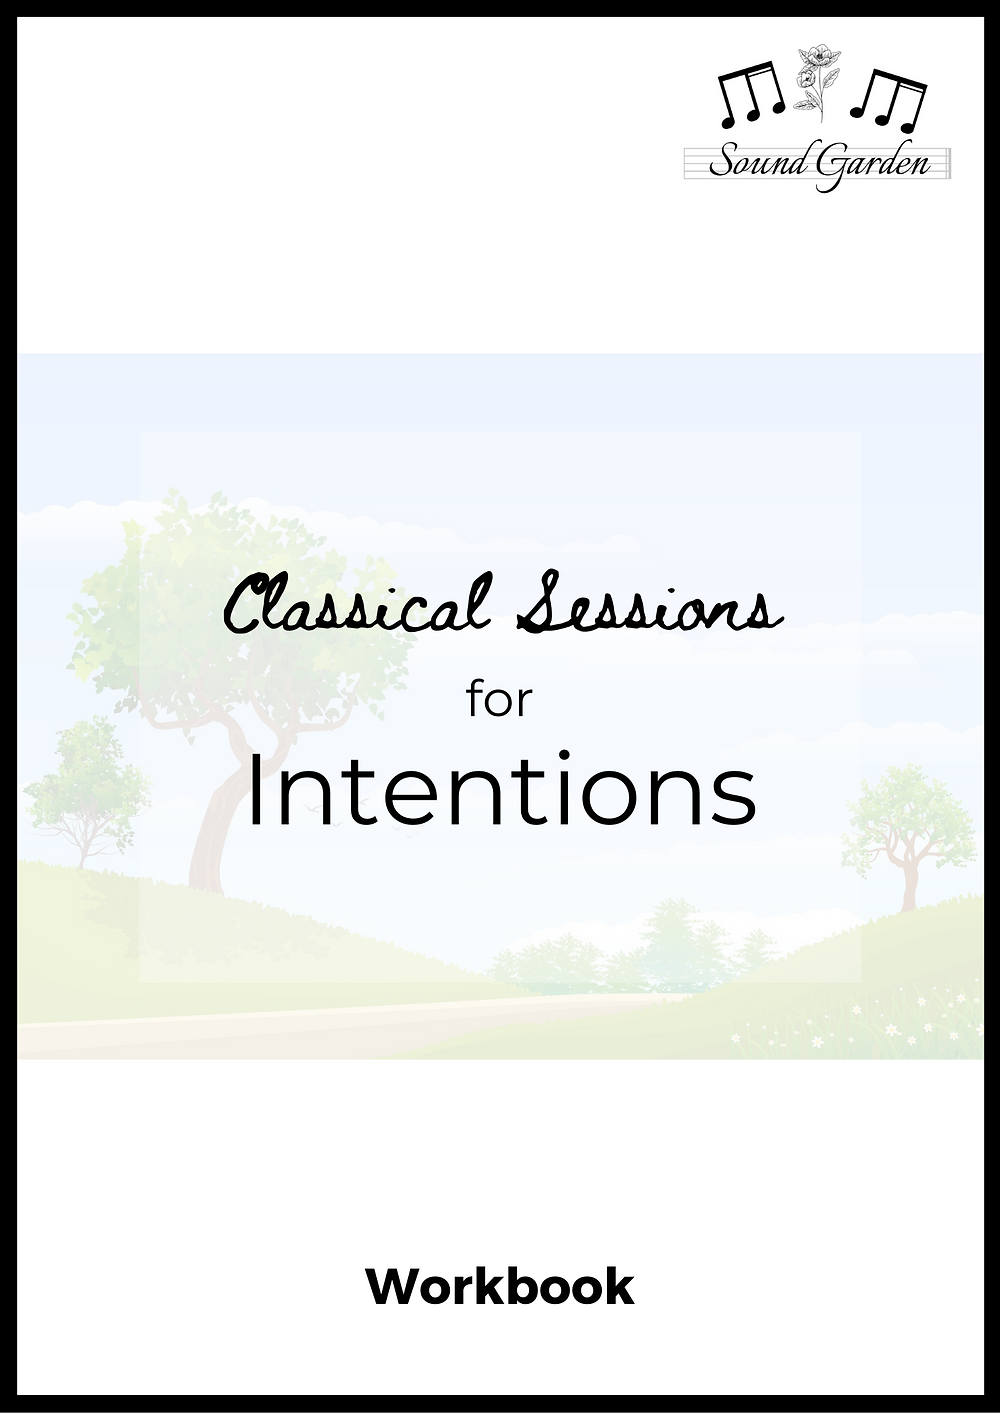 Classical Sessions for...Intentions. Printable workbook.